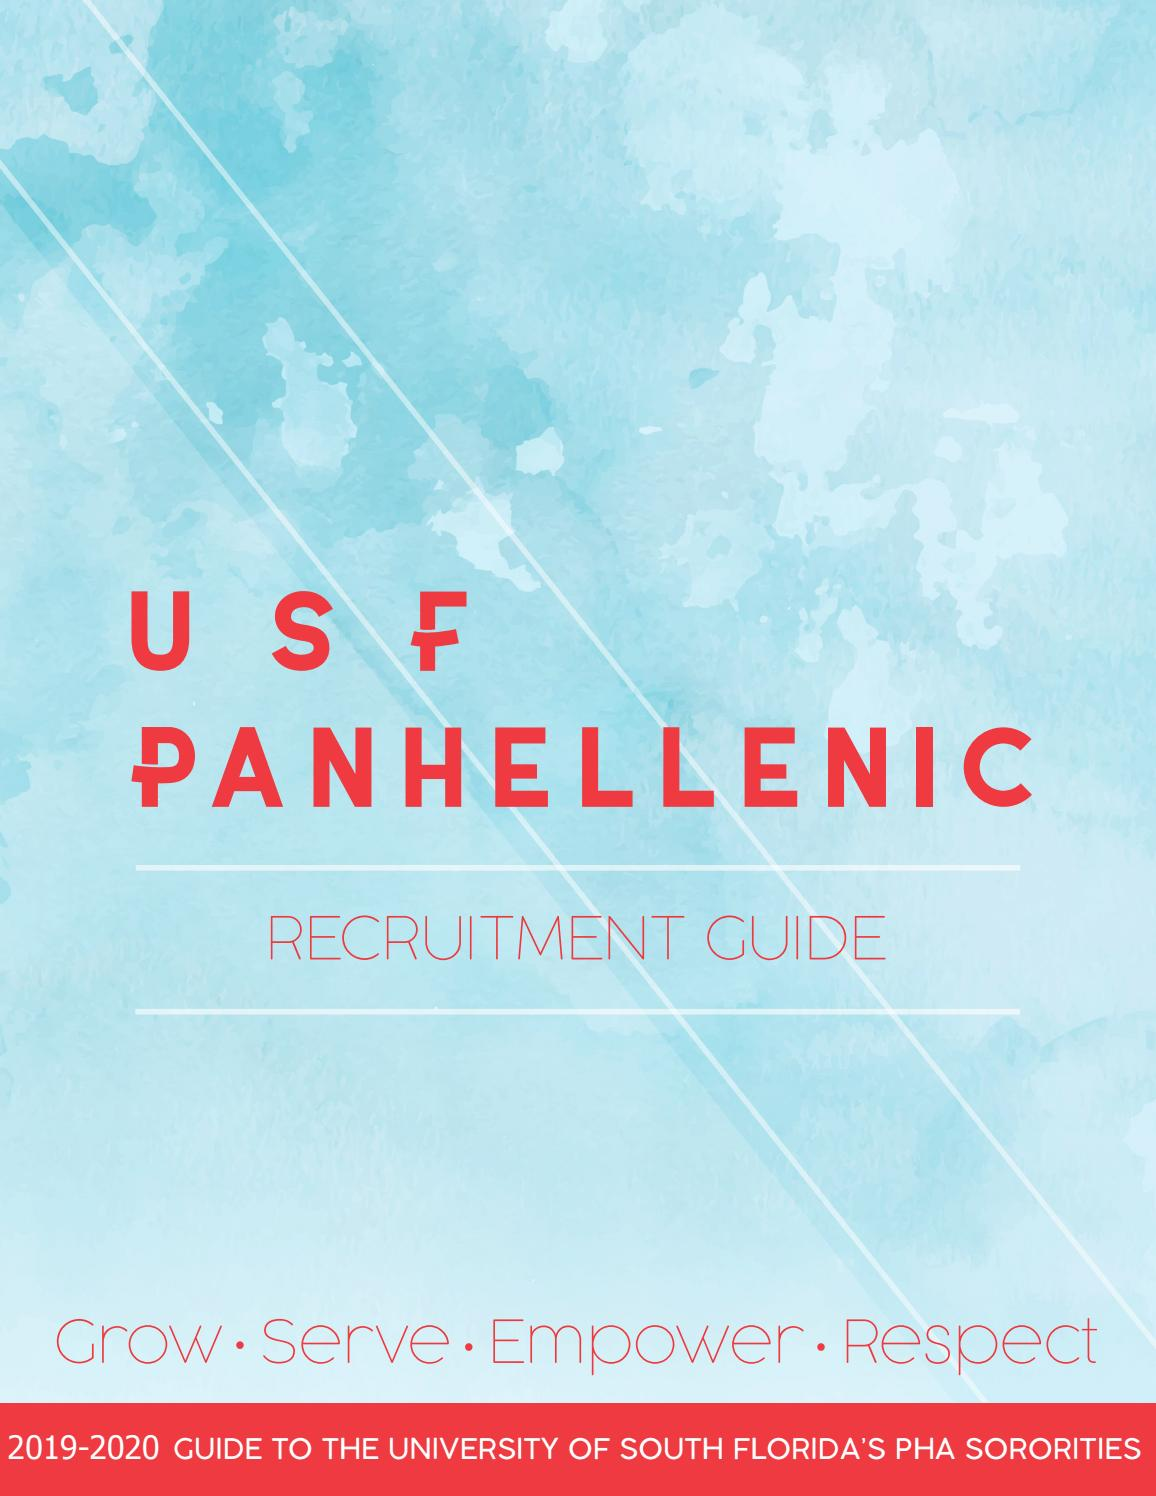 Usf Spring Break 2020.2019 Recruitment Guide By Usf Panhellenic Issuu